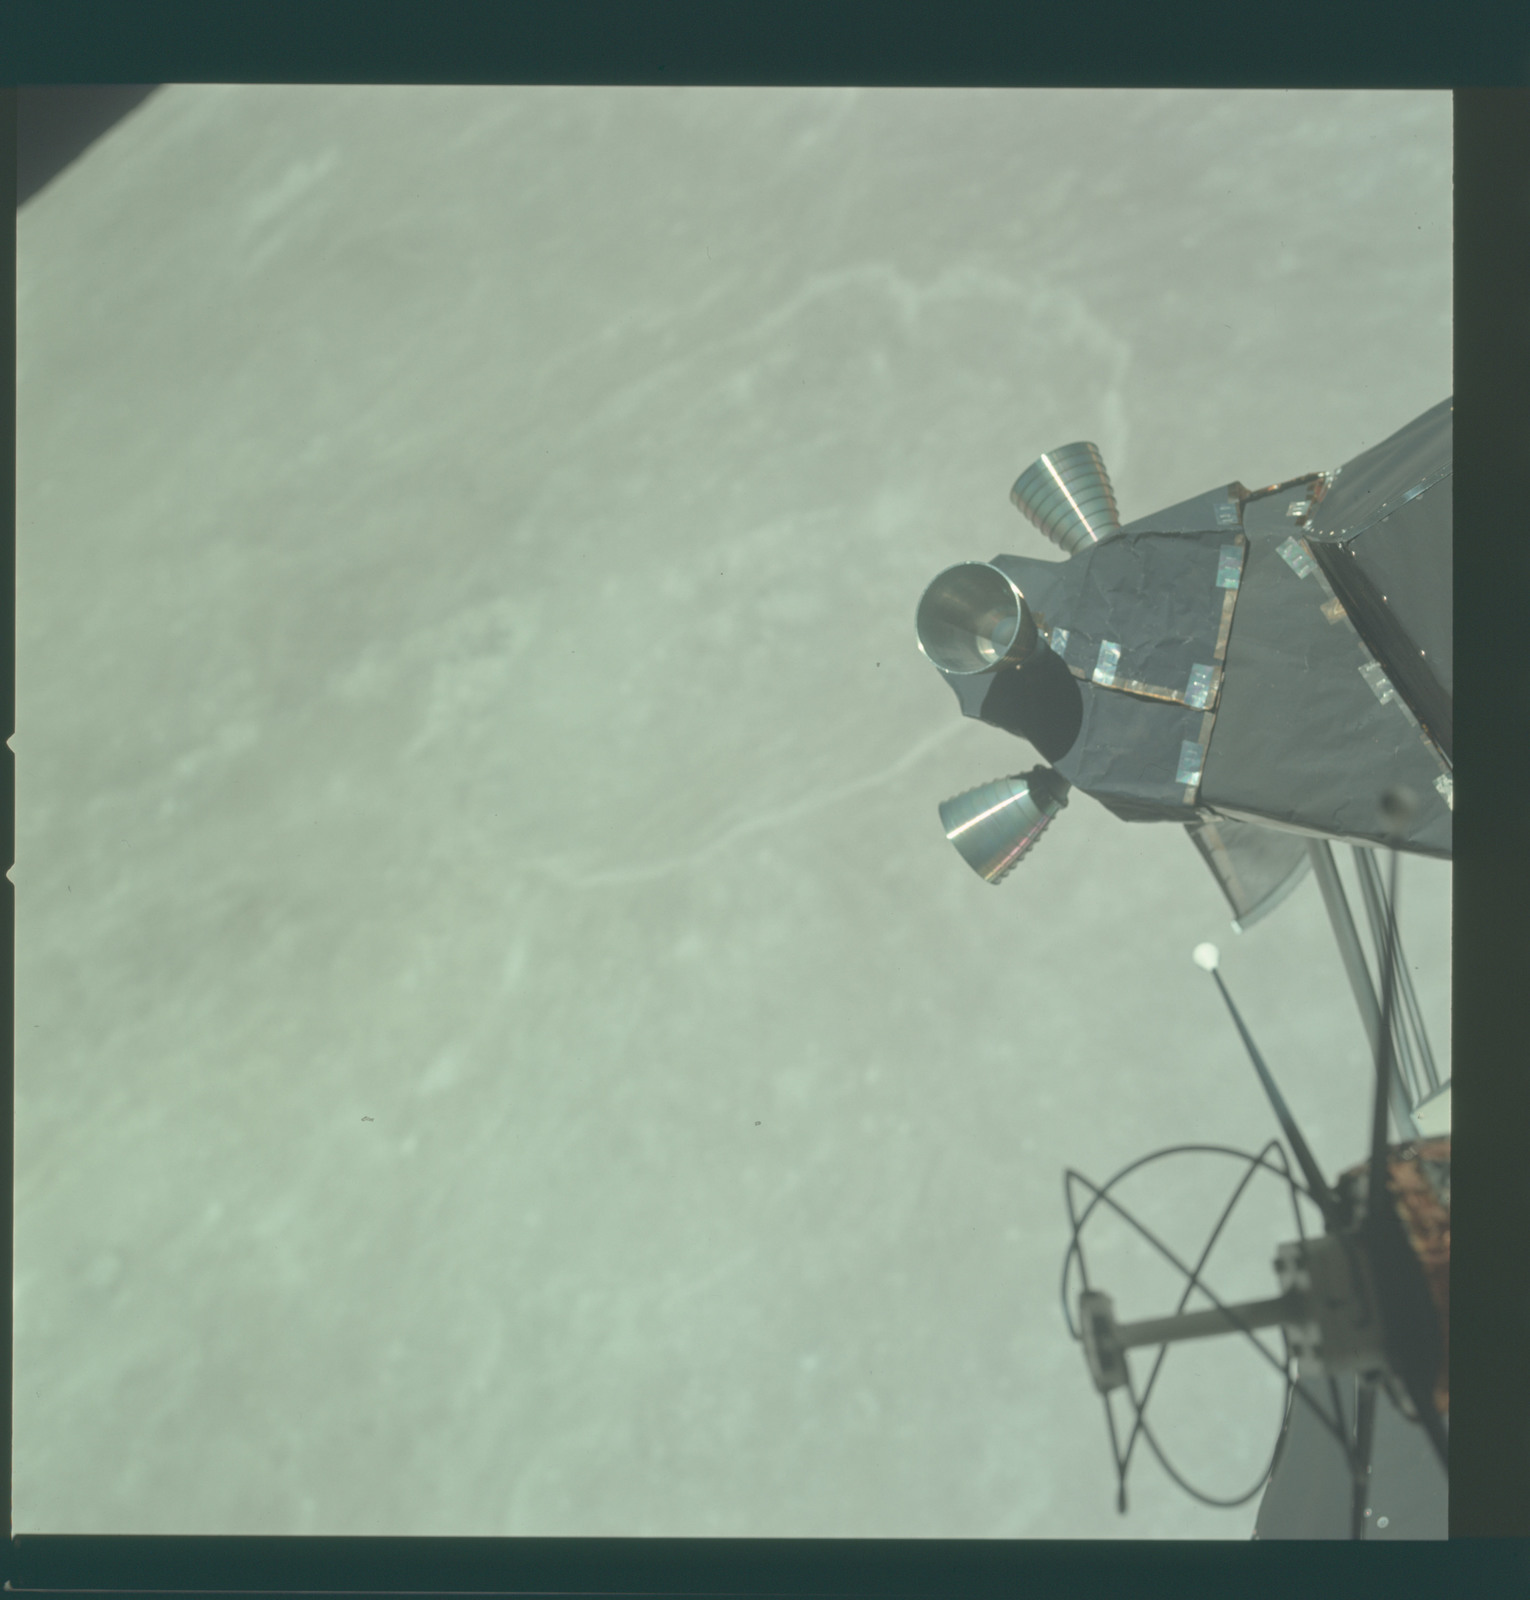 AS11-44-6541 - Apollo 11 - Apollo 11 Mission image - View of Moon limb near Crater 221, TO 46